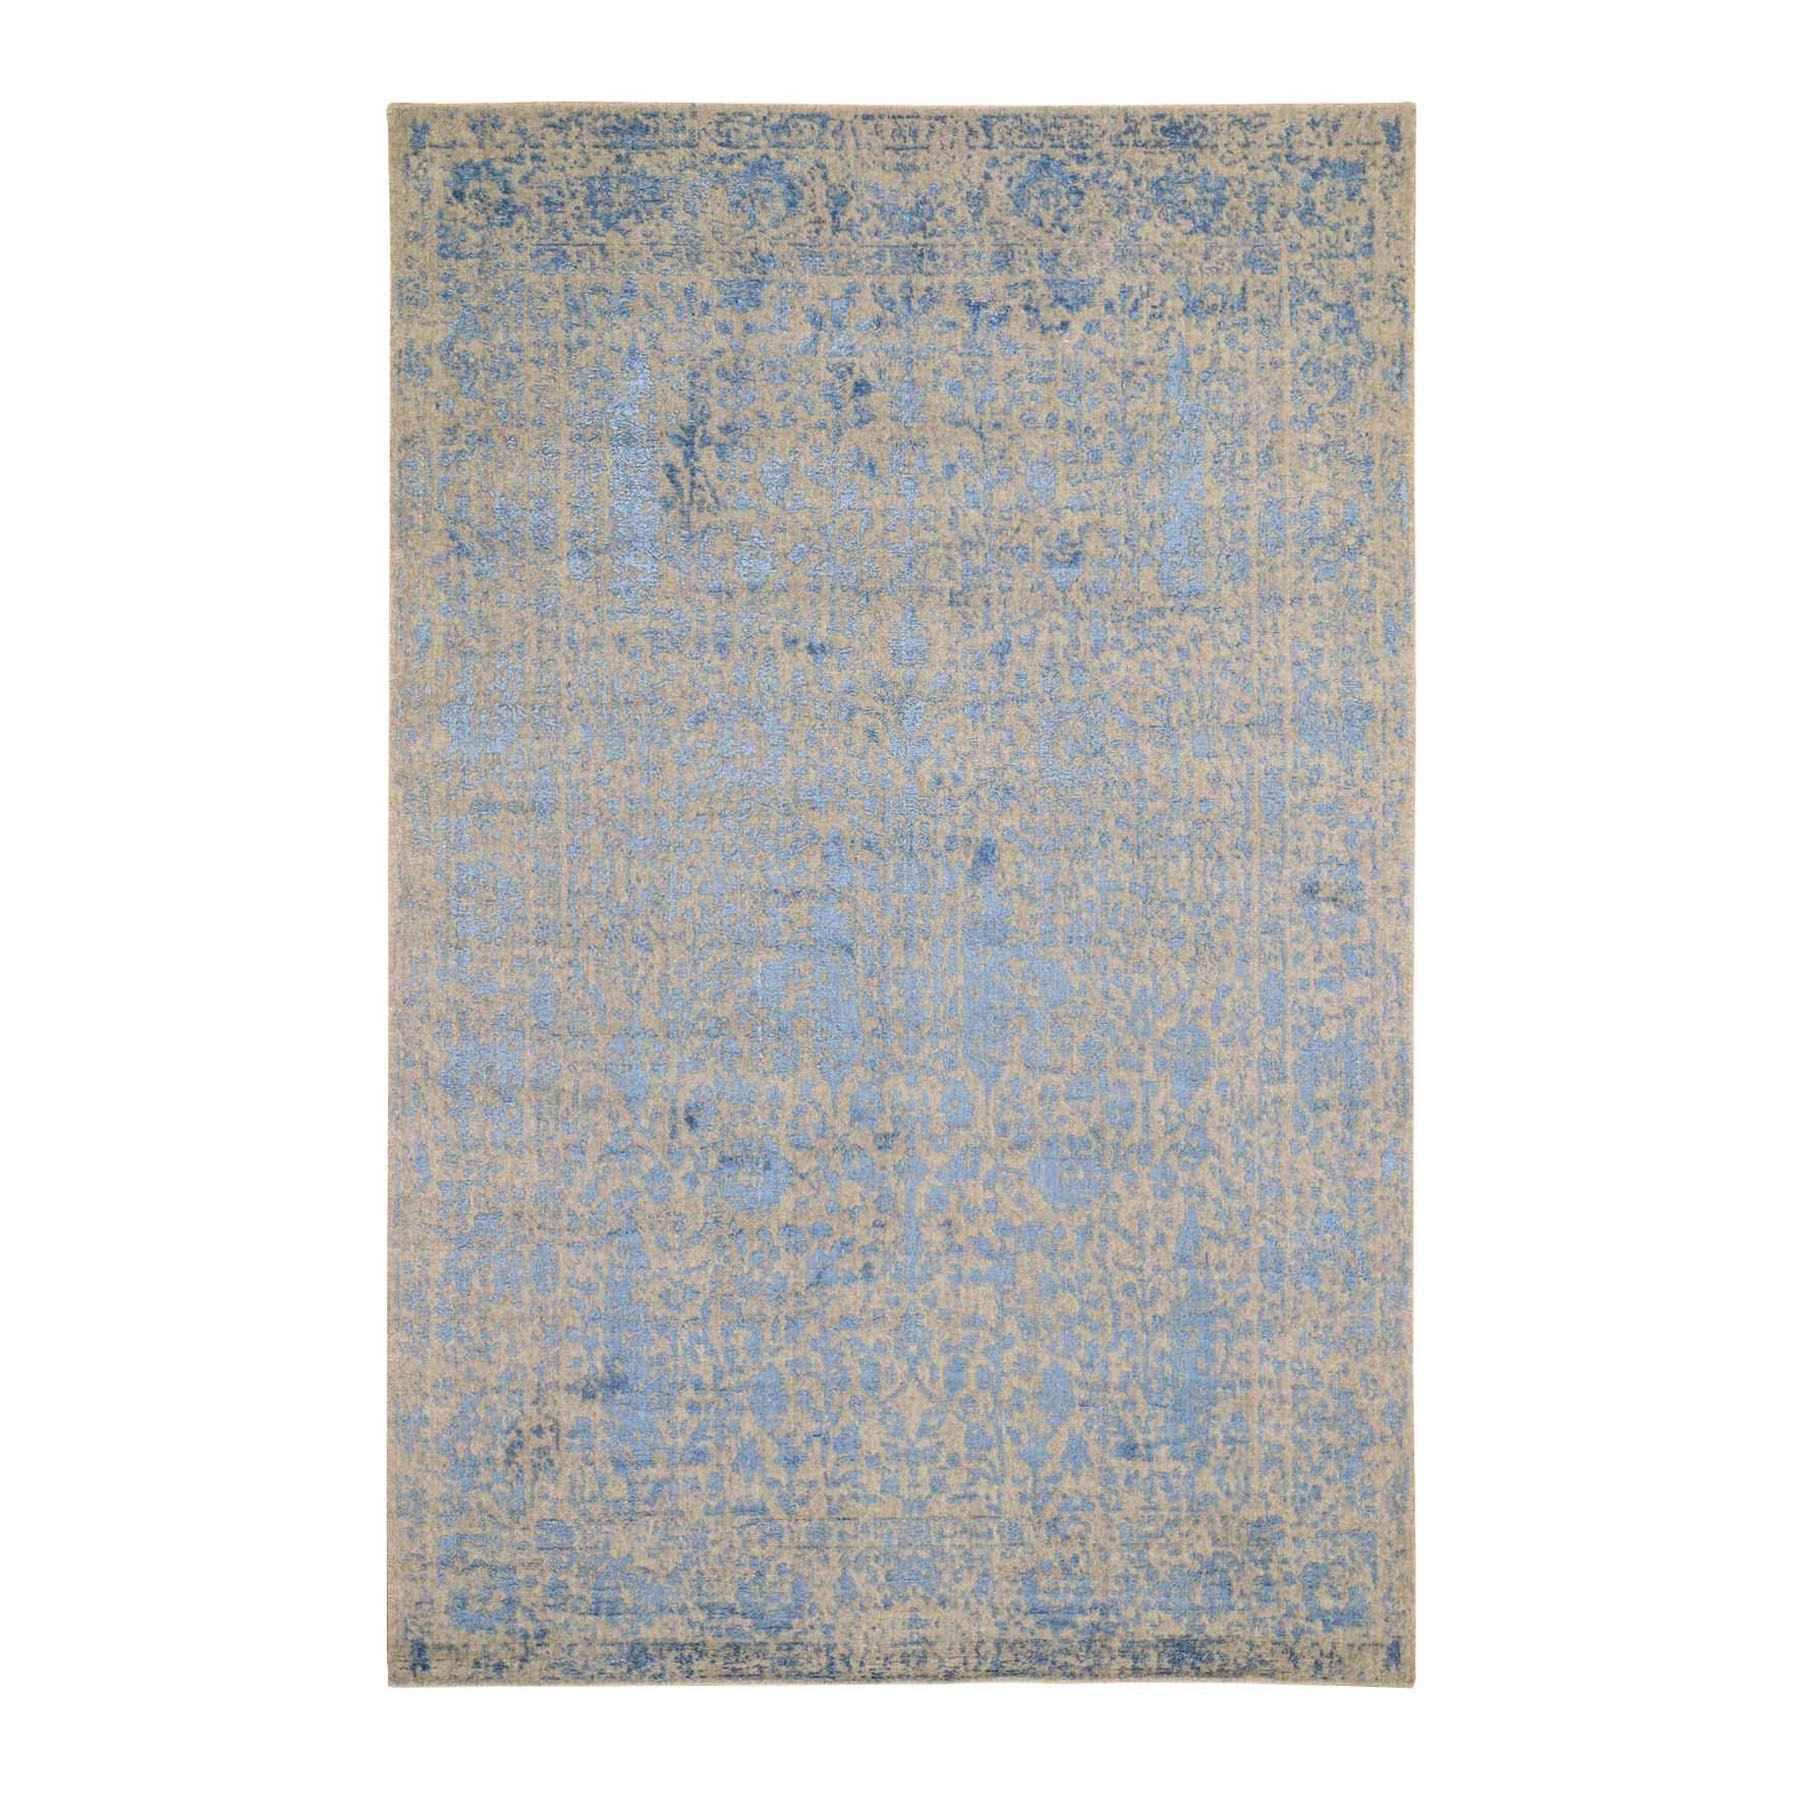 """5'10""""X9'2"""" Jacquard Hand Loomed Blue Broken Cypress Tree Design Wool And Art Silk Thick And Plush Oriental Rug moad9c08"""